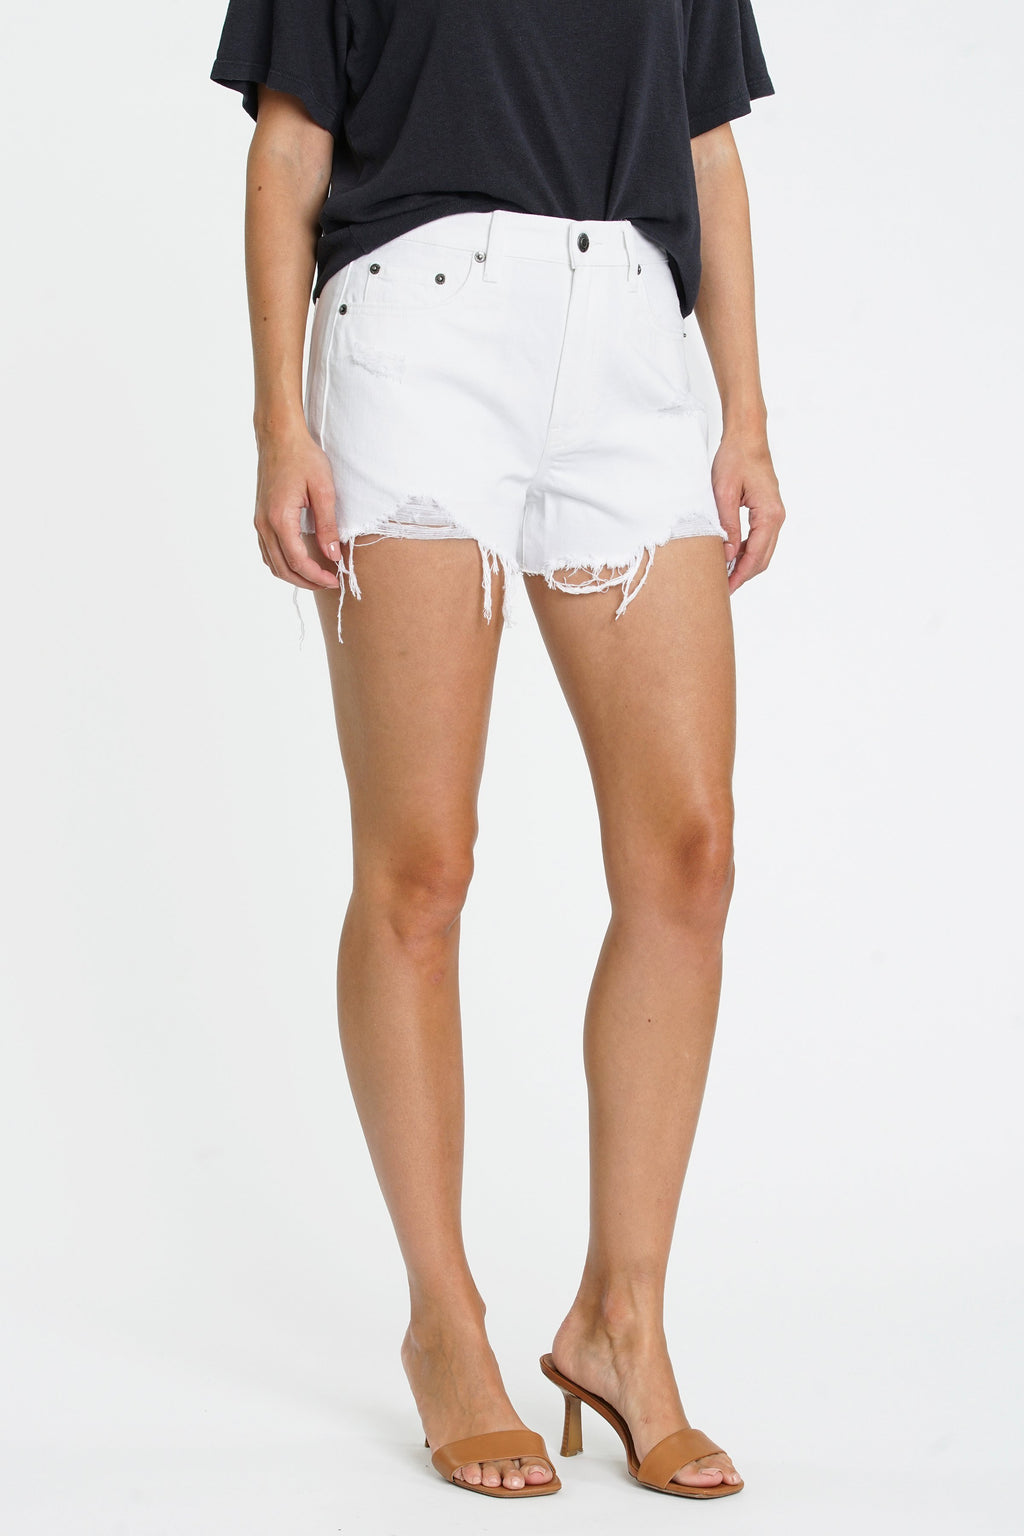 Nova highwaist distressed shorts